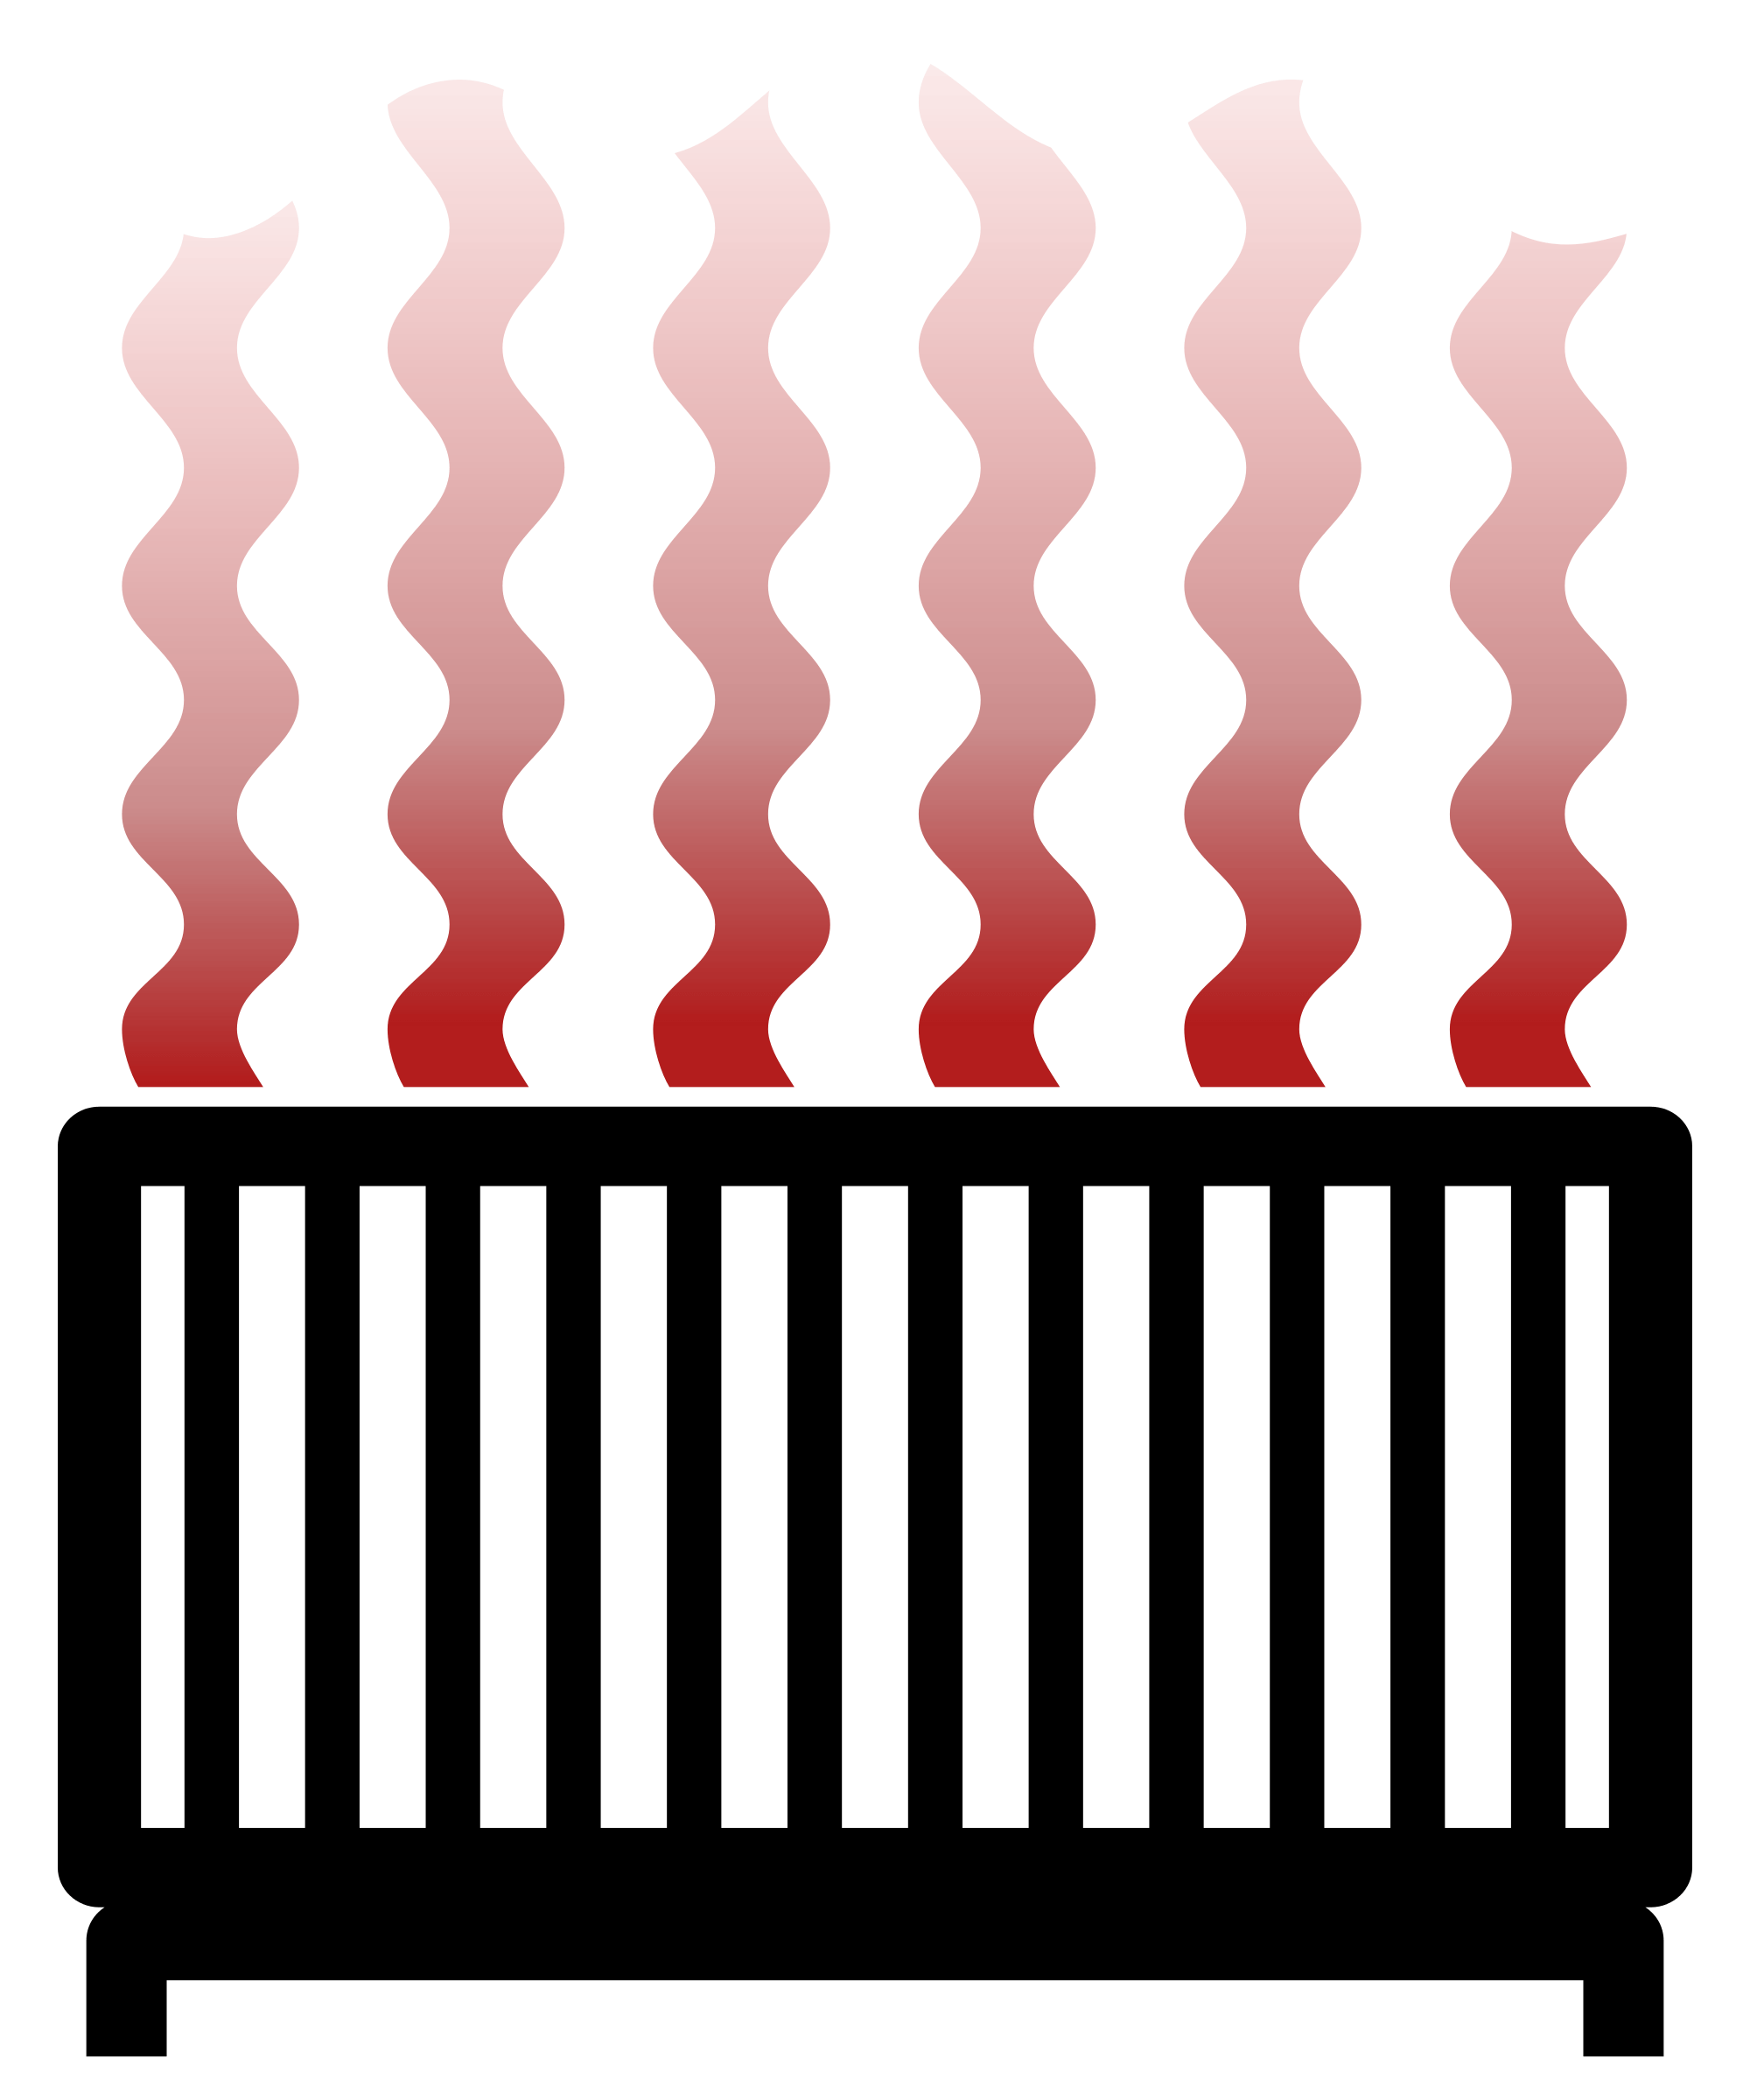 Heating radiator png stickpng. Heat clipart transparent background